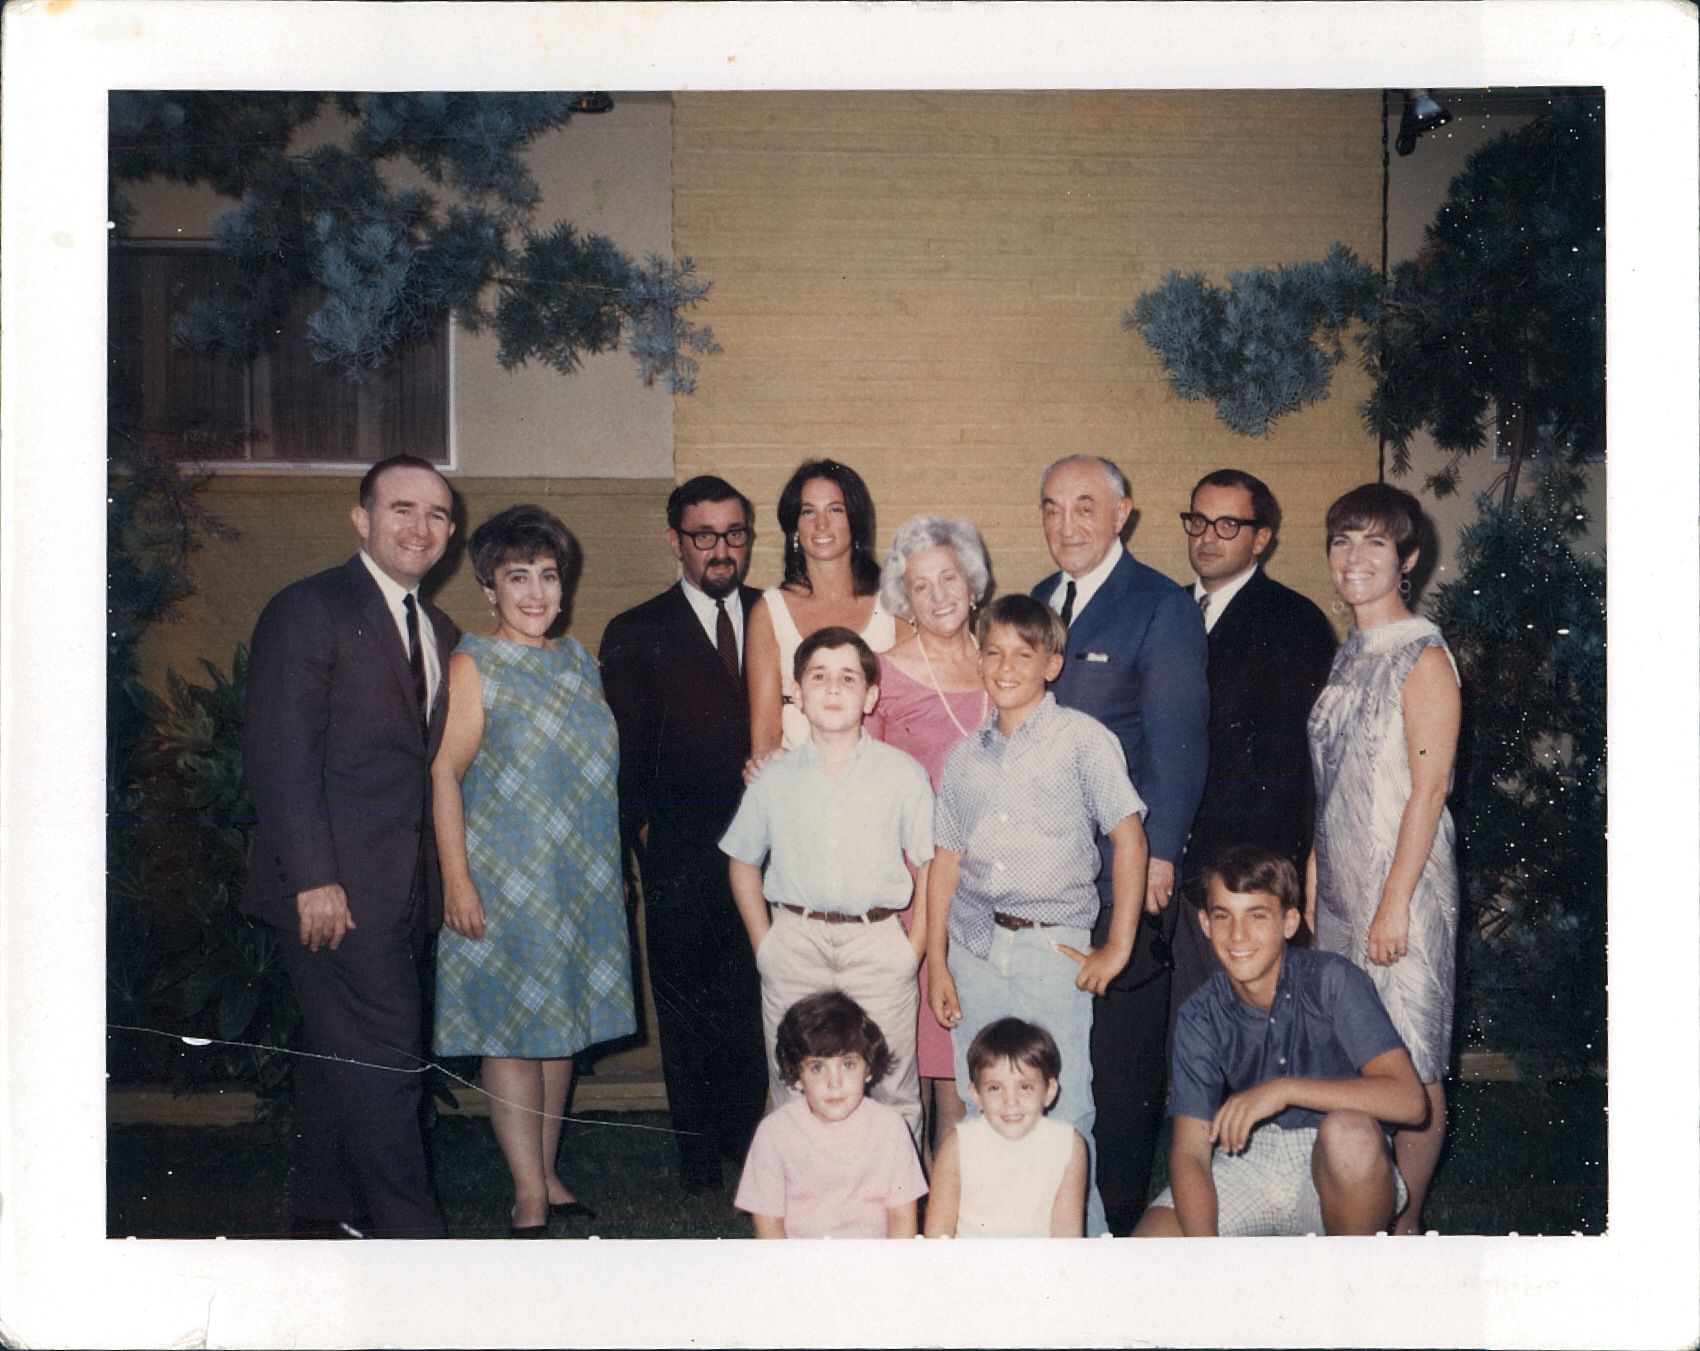 My extended family, circa 1968